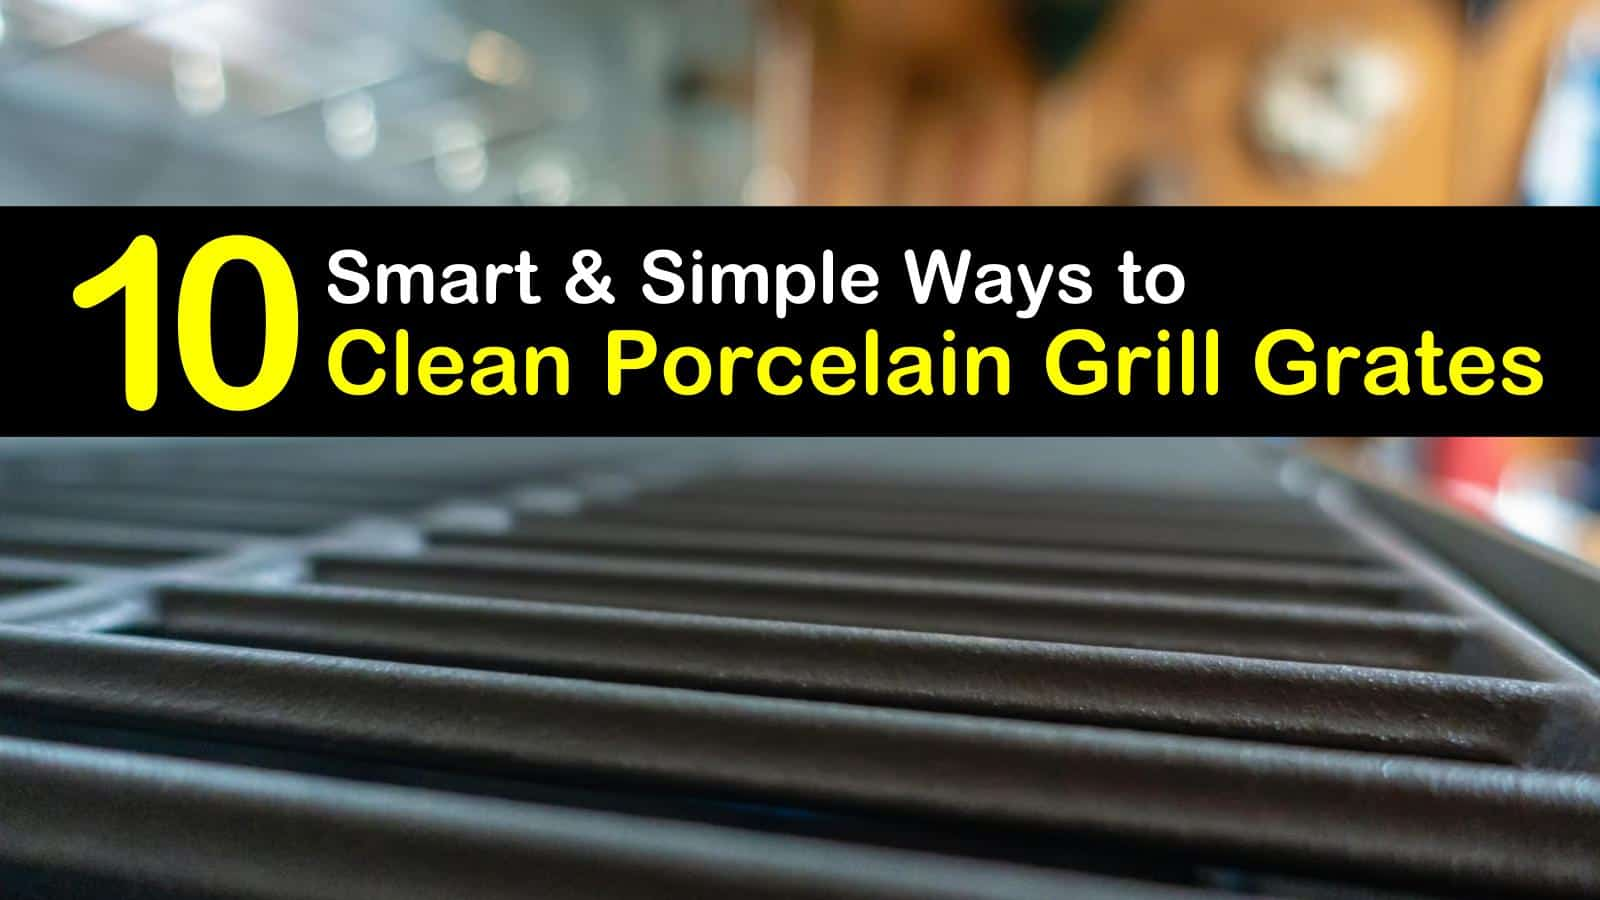 6 Smart & Simple Ways to Clean Porcelain Grill Grates